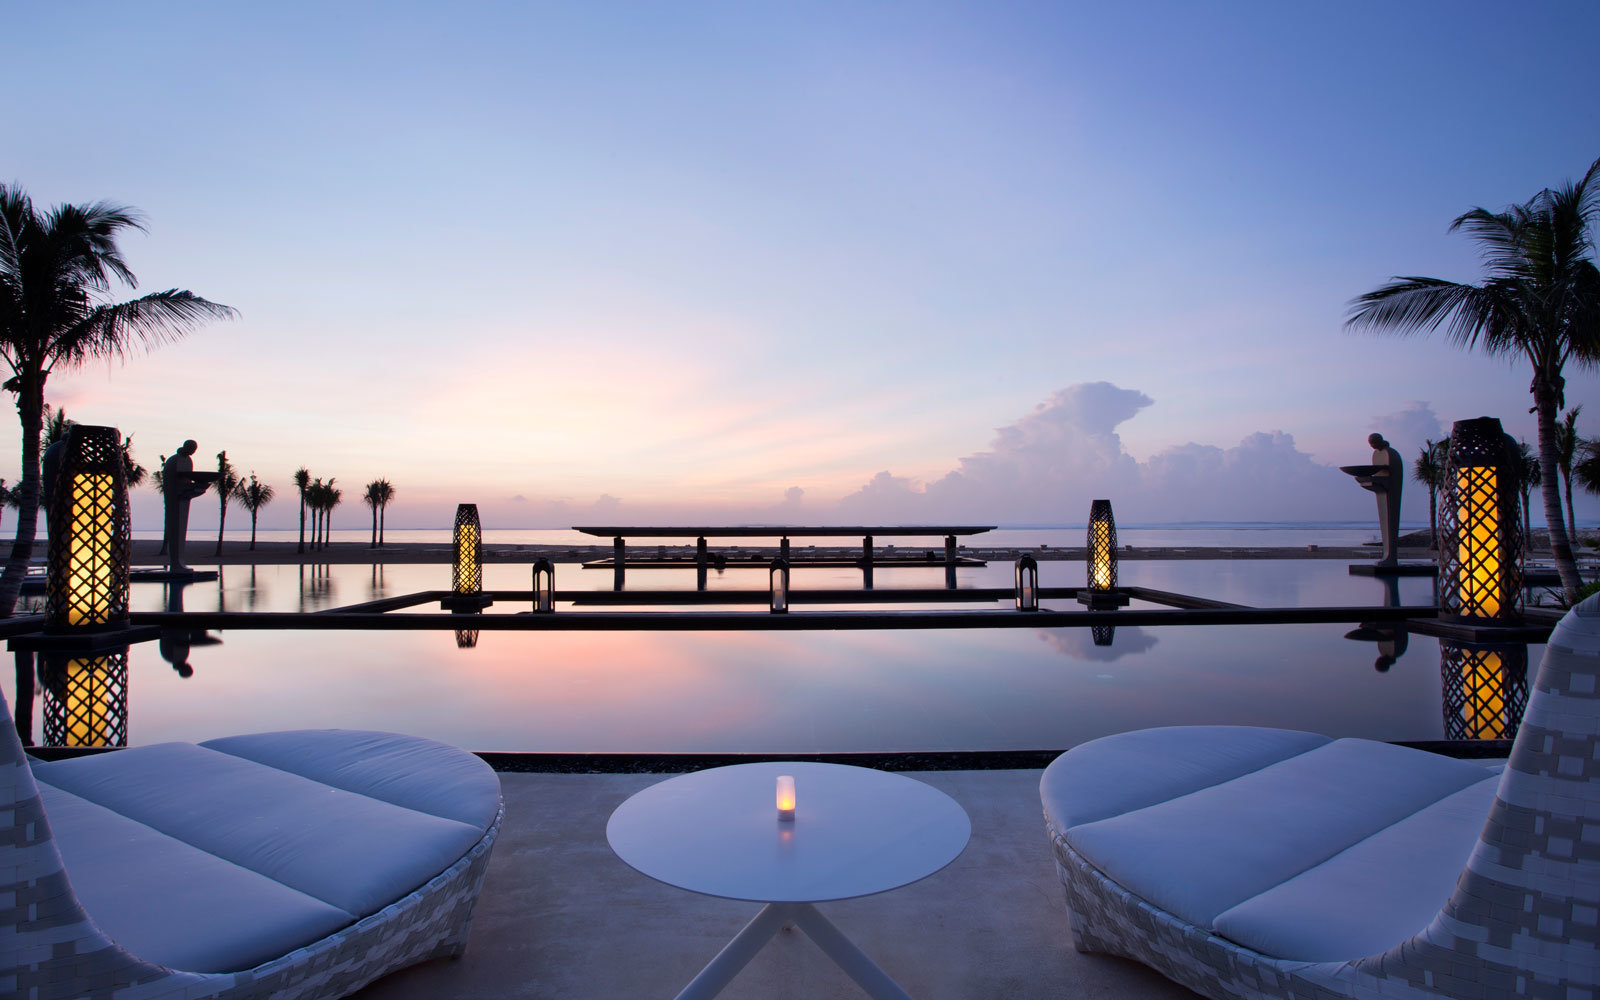 mulia-resort-pool-bali-indonesia-POOLVIEW0318.jpg